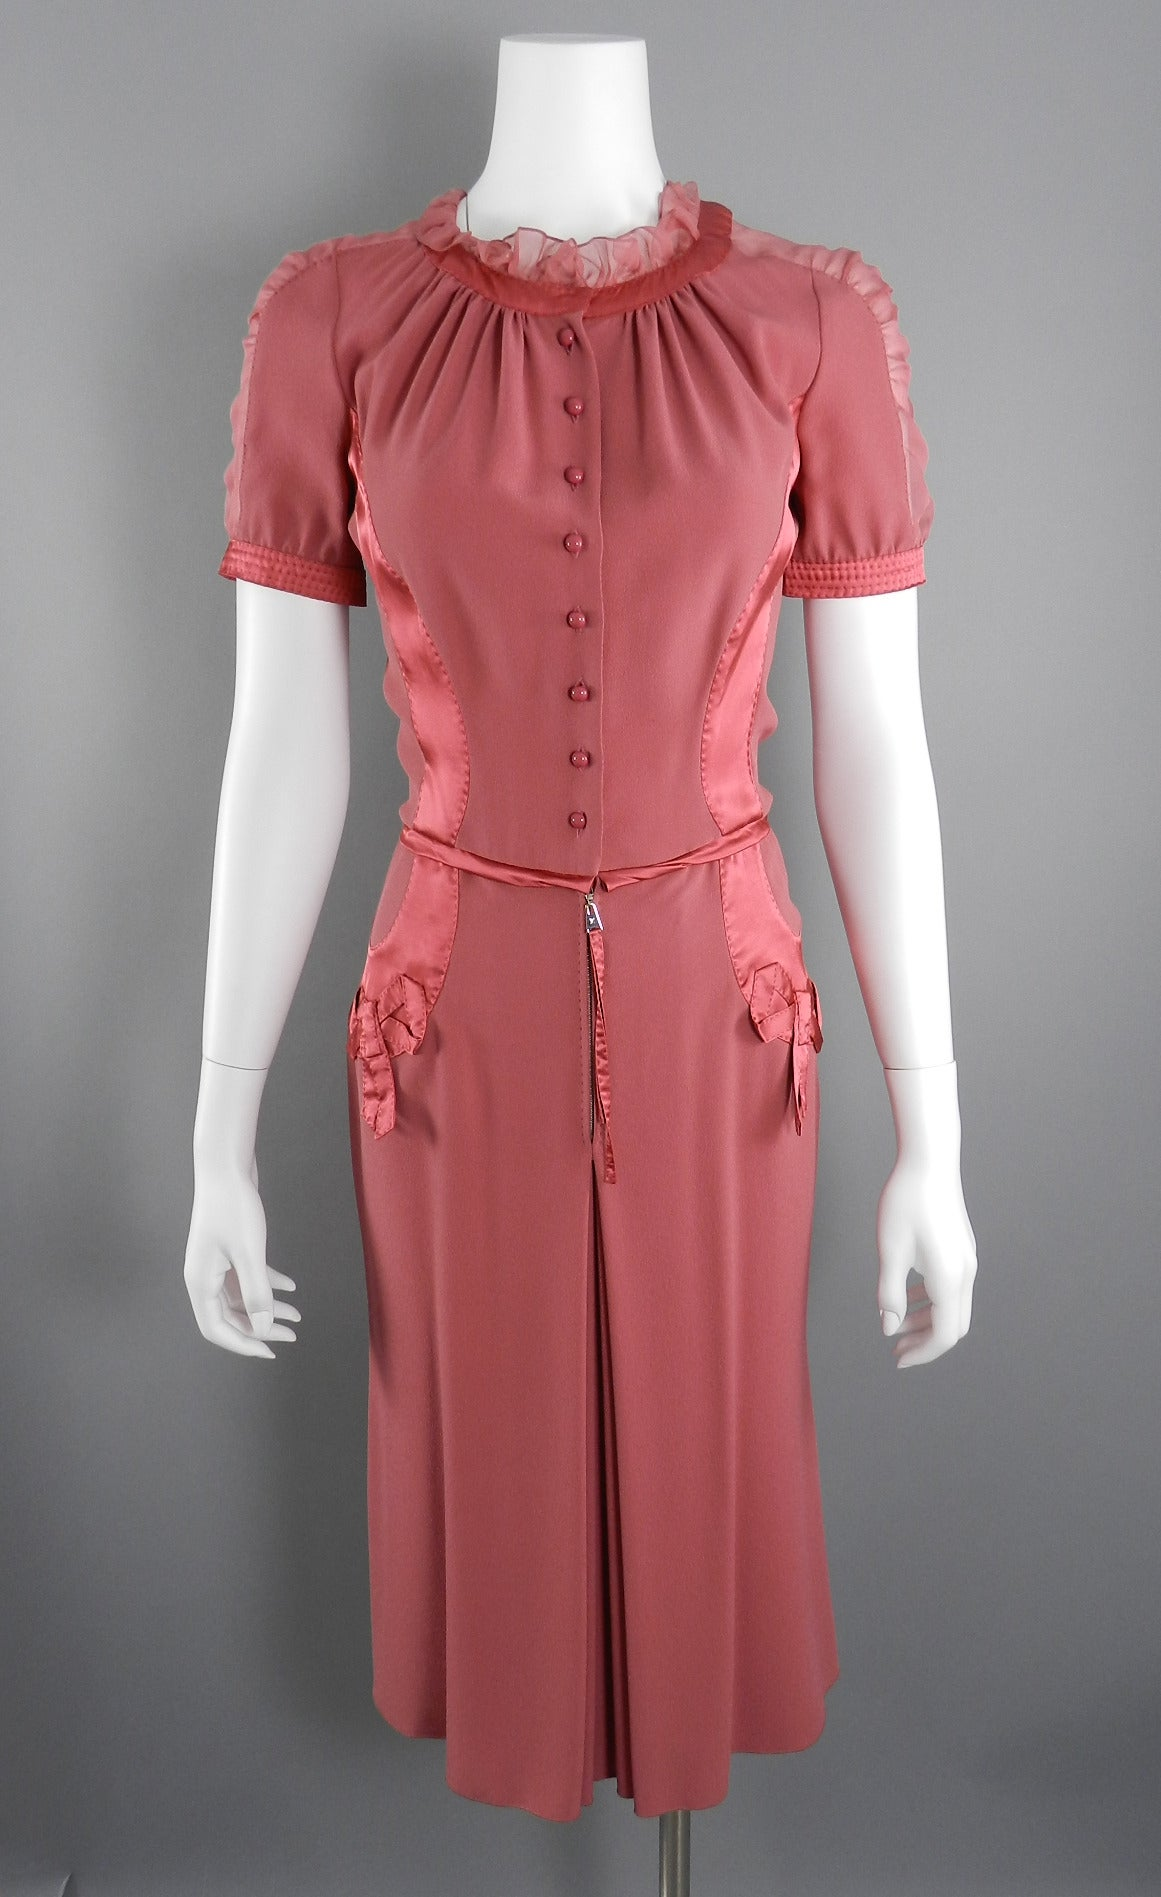 Louis Vuitton Rose Color 1930's Vintage Style Dress 9